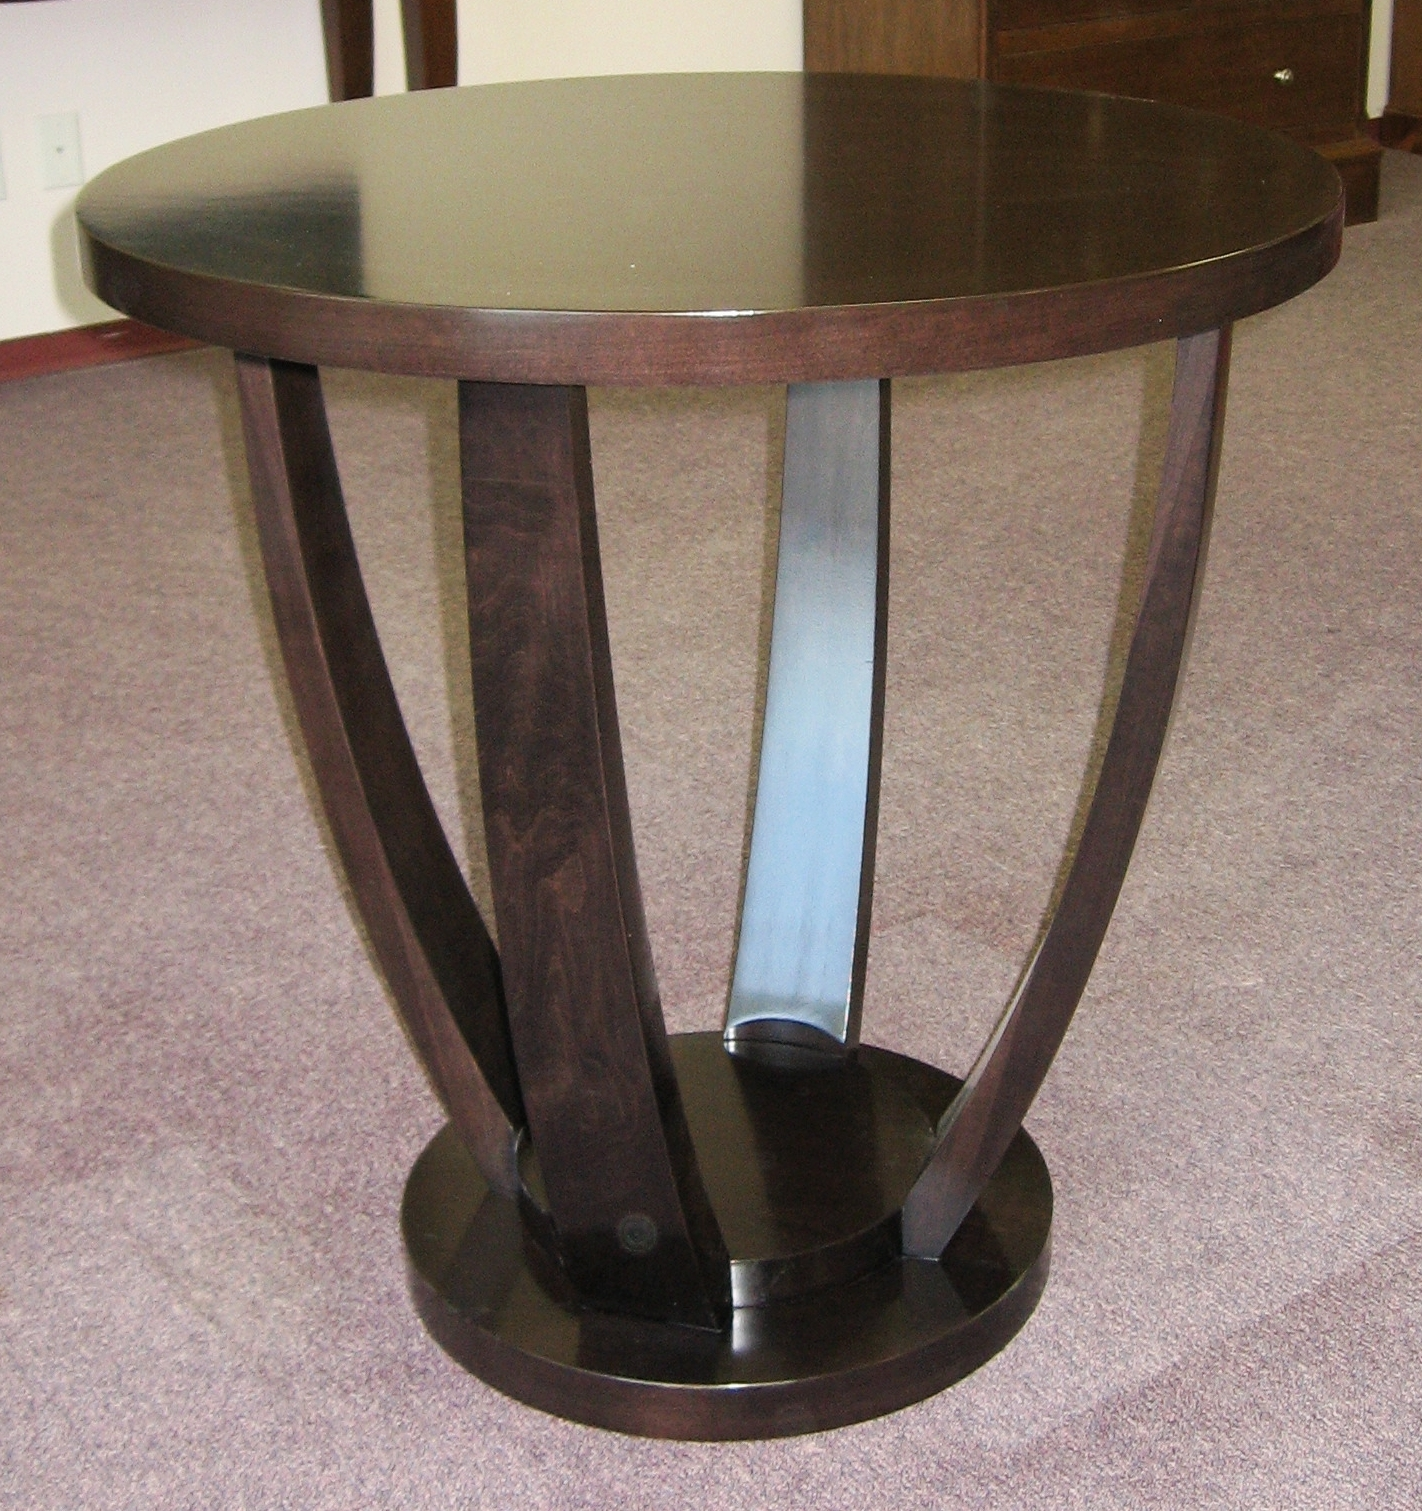 transitional-style-round-small-table.JPG